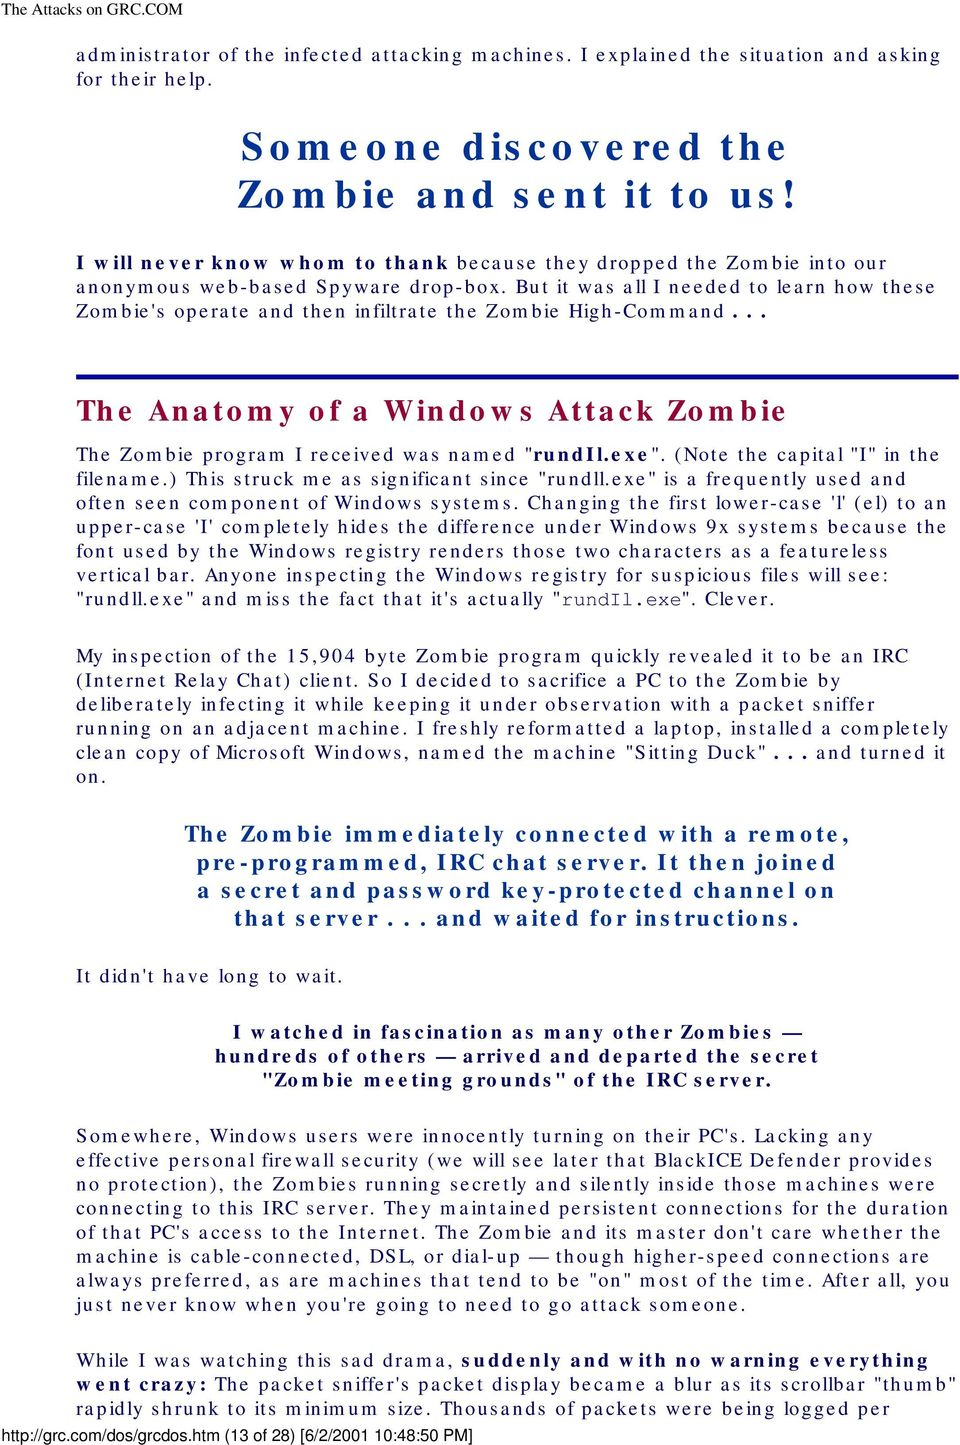 "But it was all I needed to learn how these Zombie's operate and then infiltrate the Zombie High-Command... The Anatomy of a Windows Attack Zombie The Zombie program I received was named ""rundil.exe""."